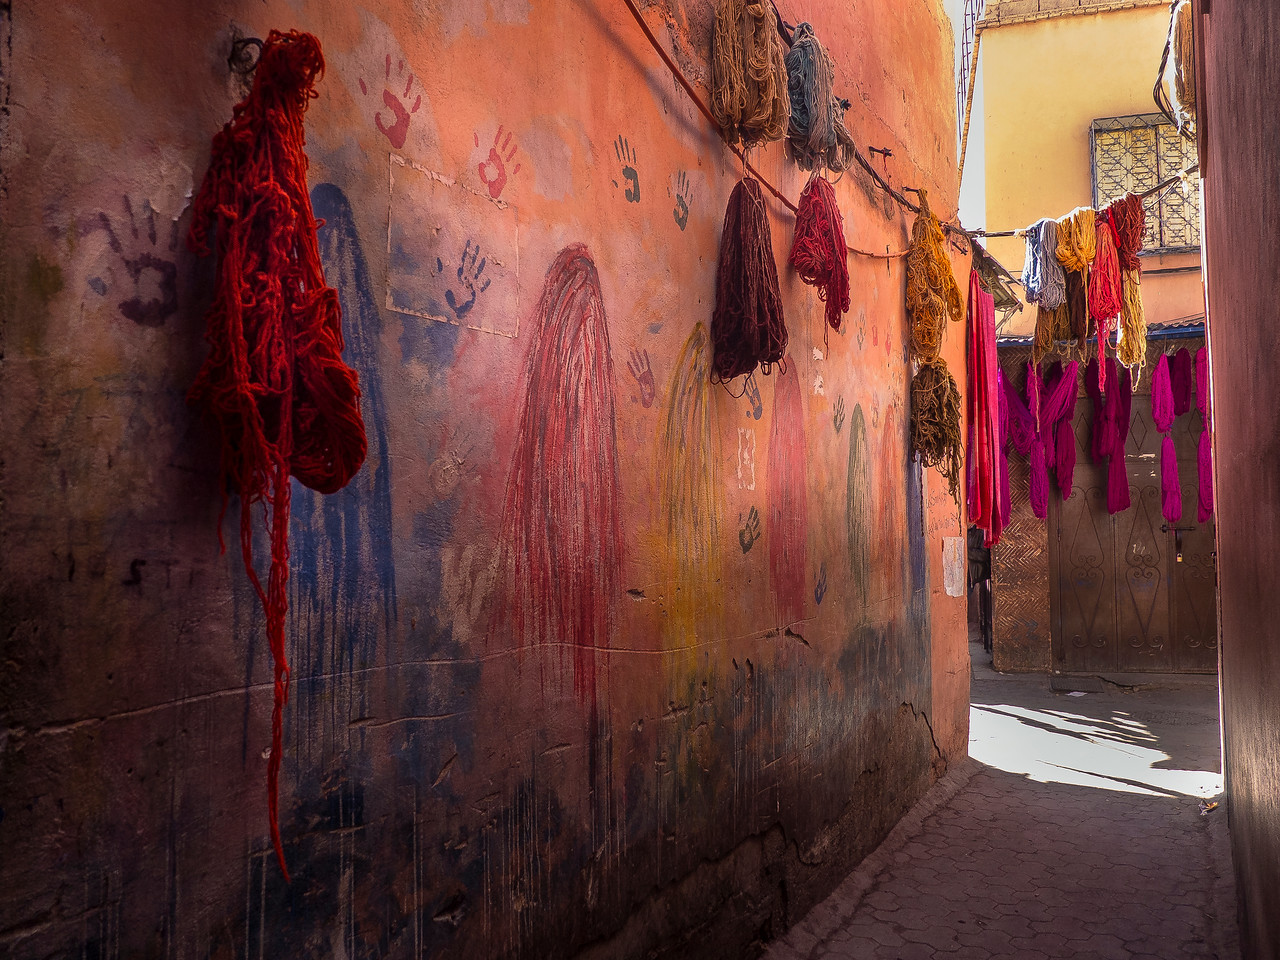 Fabric Dyer's Souk, Marrakech